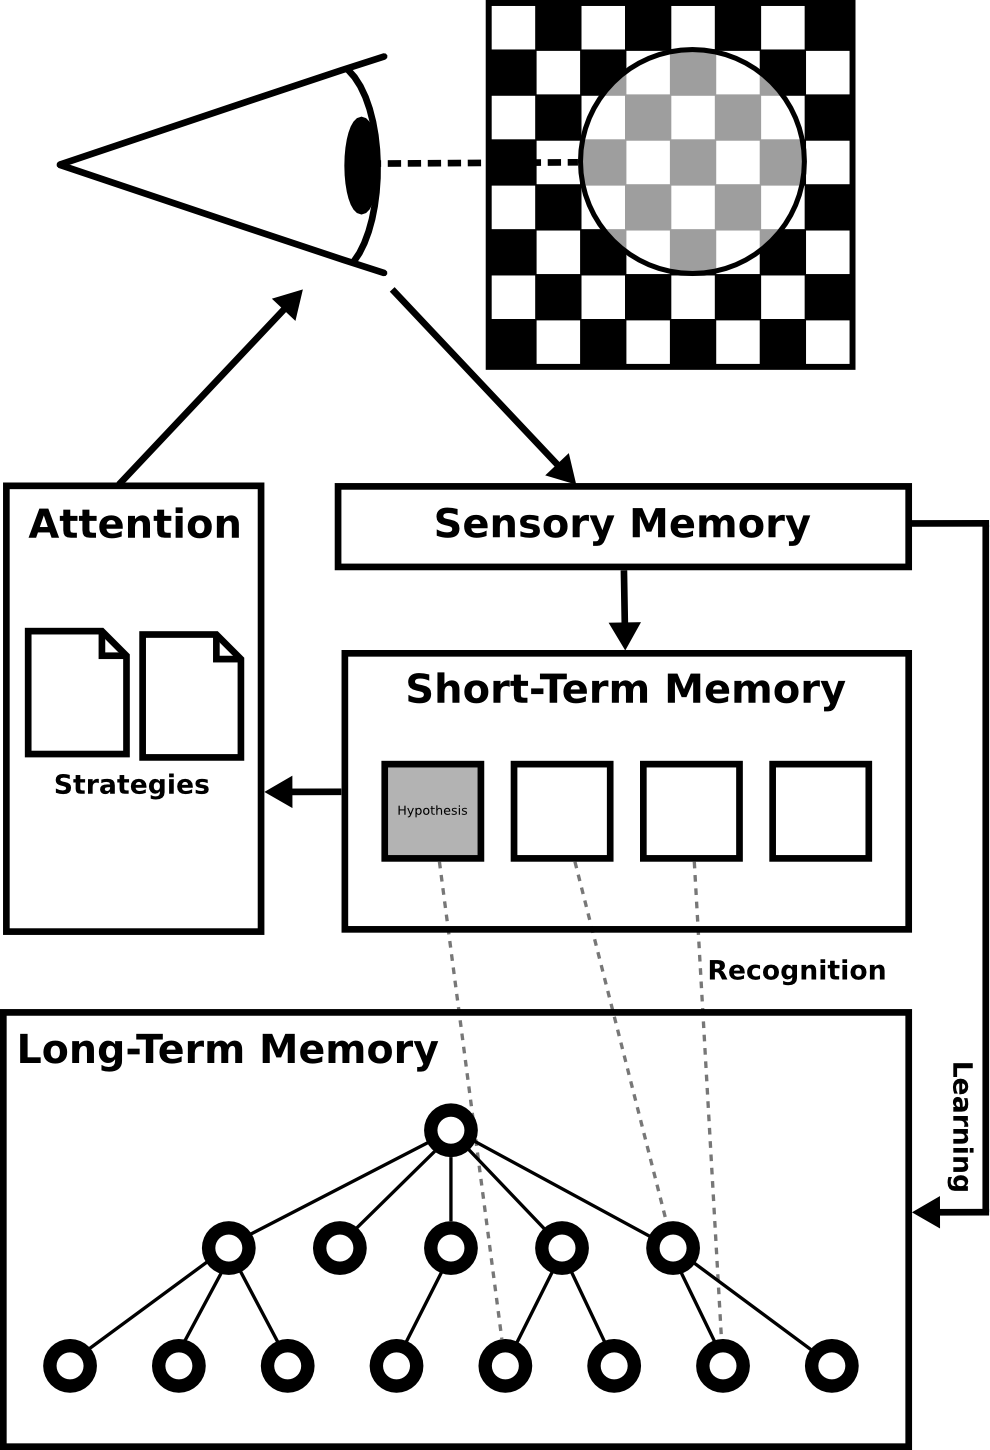 Figure describing the overall architecture of the CHREST system, showing a perception system, a short-term memory store, and a long-term memory store.